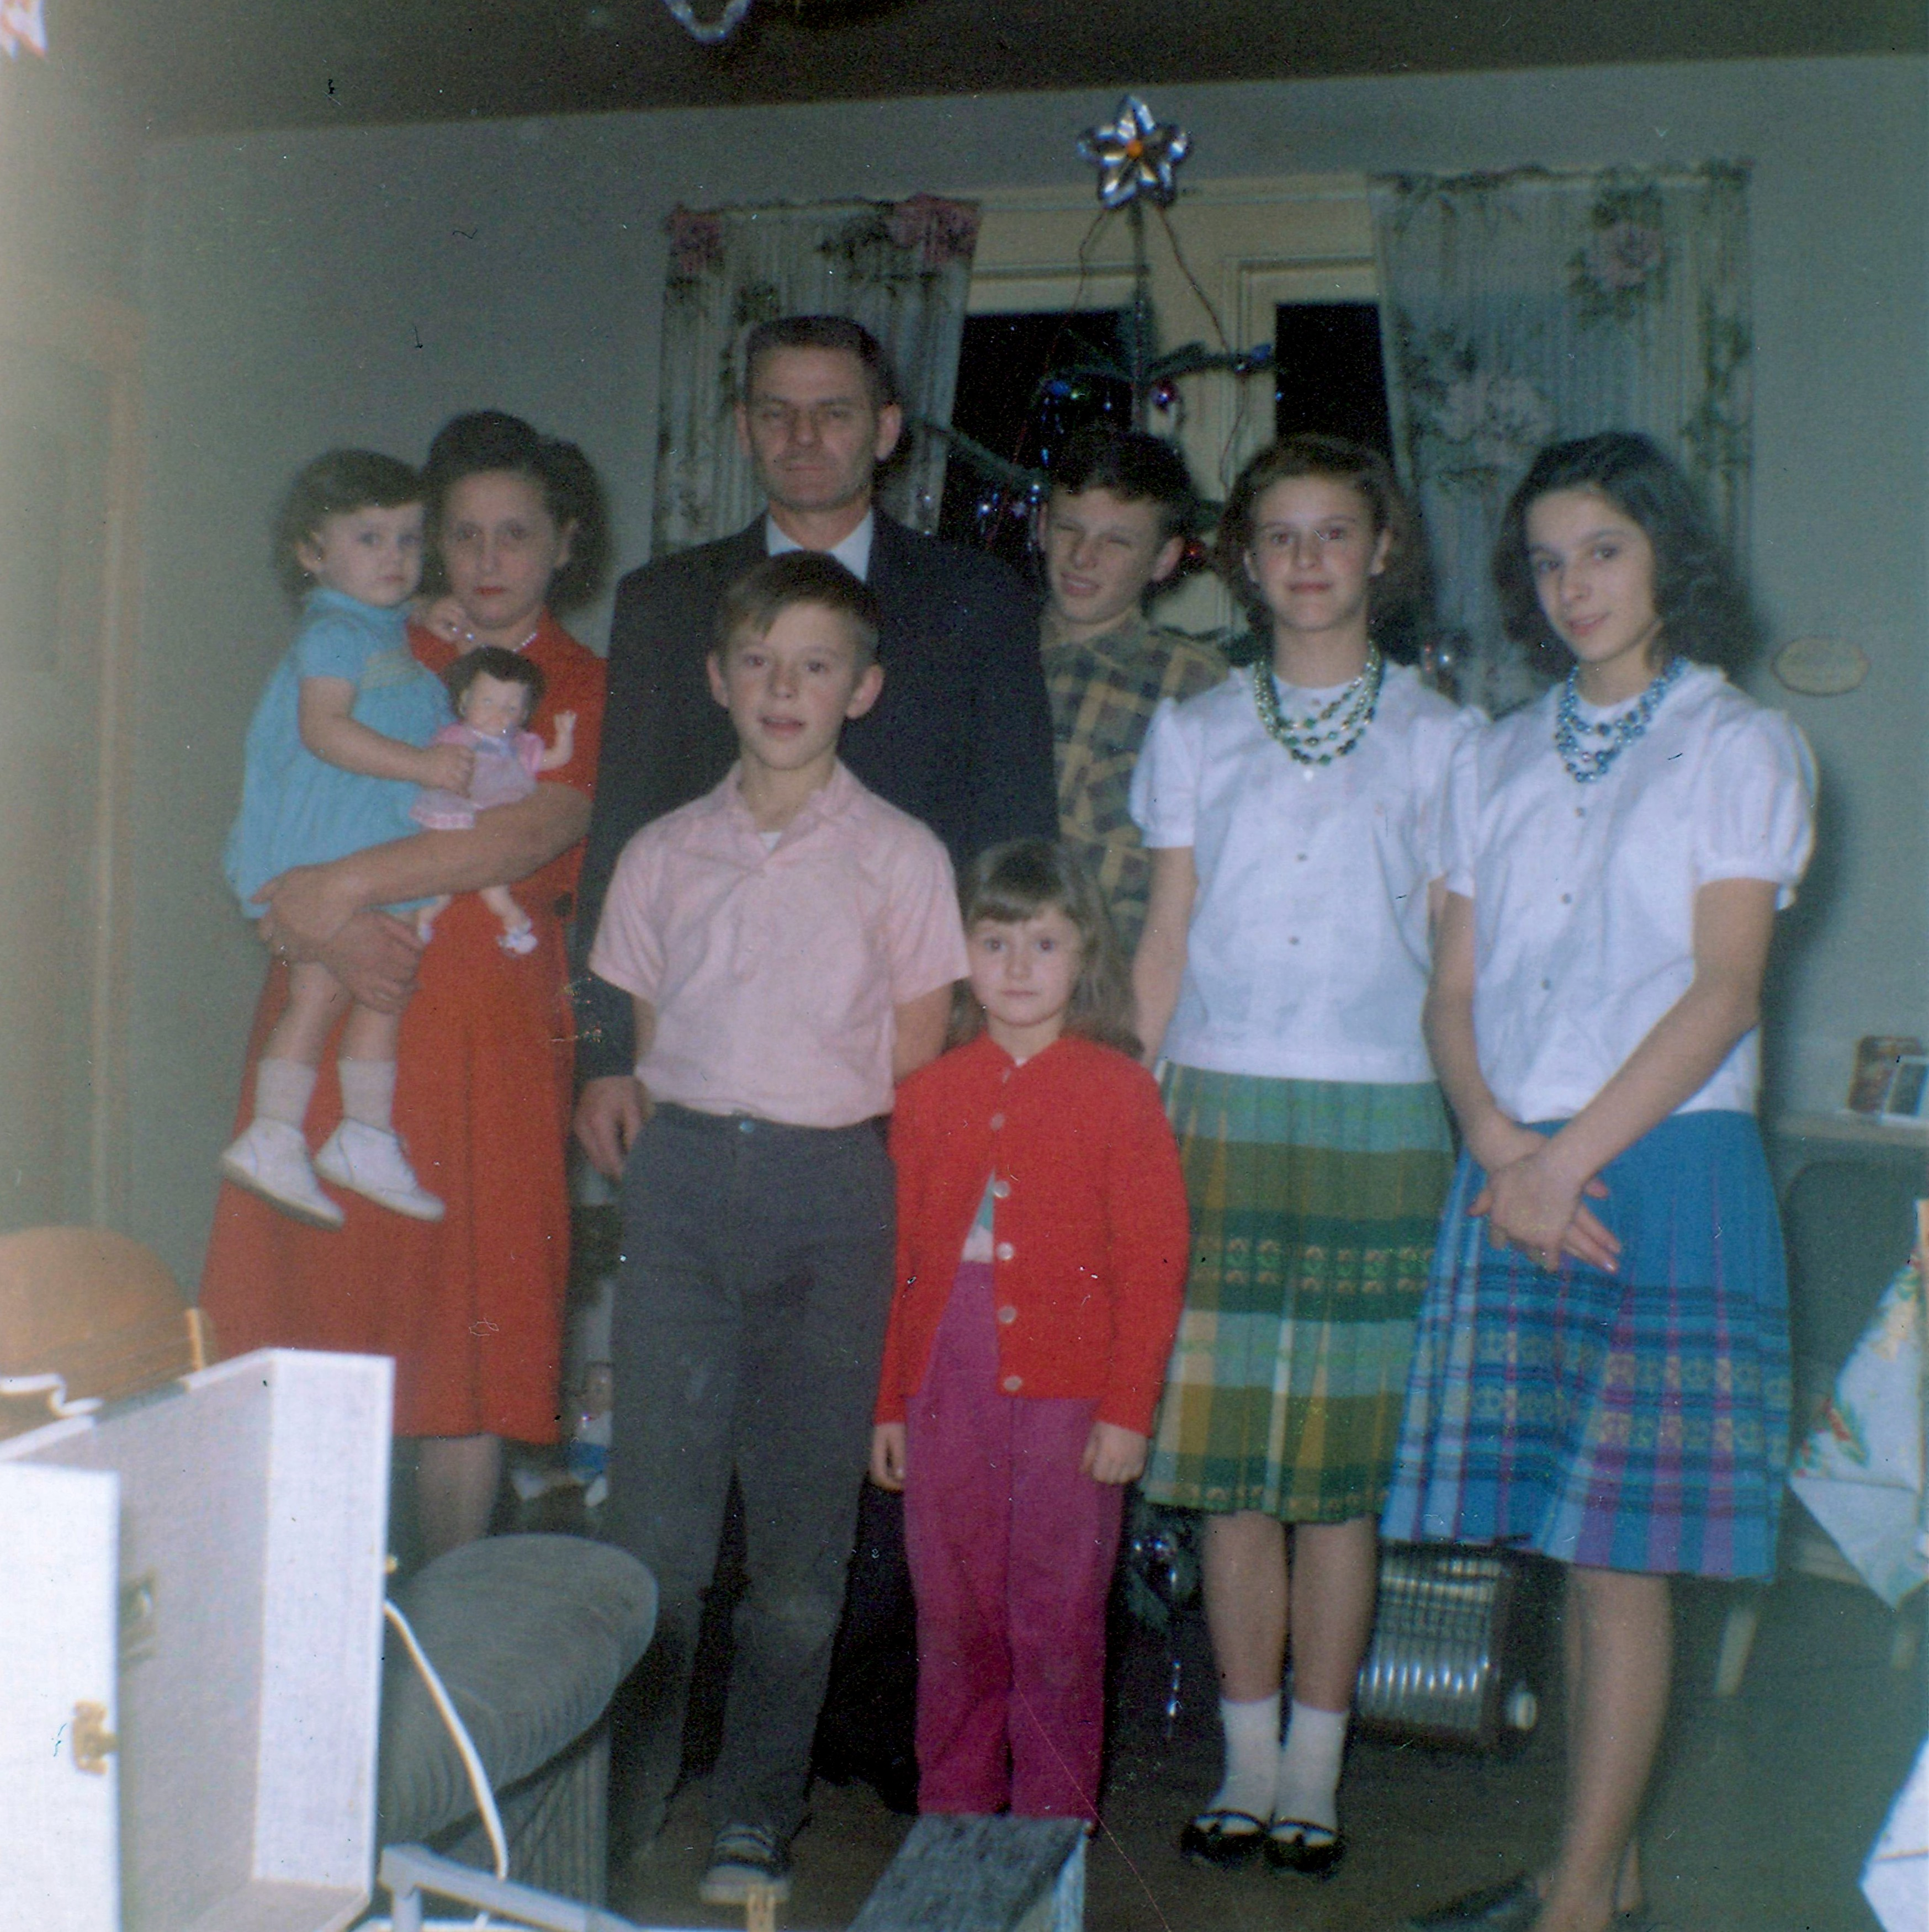 Christmas 1963, Ernie Frazer with his wife and six of his seven children. L to R, Karen Frazer, Christina Frazer, Ernie Frazer, Gary Frazer (in front of Ernie), Teresa Frazer, Donald Frazer (behind Teresa), Linda Frazer, and Dianne Frazer. Eldest daughter Sharon was taking the photo.